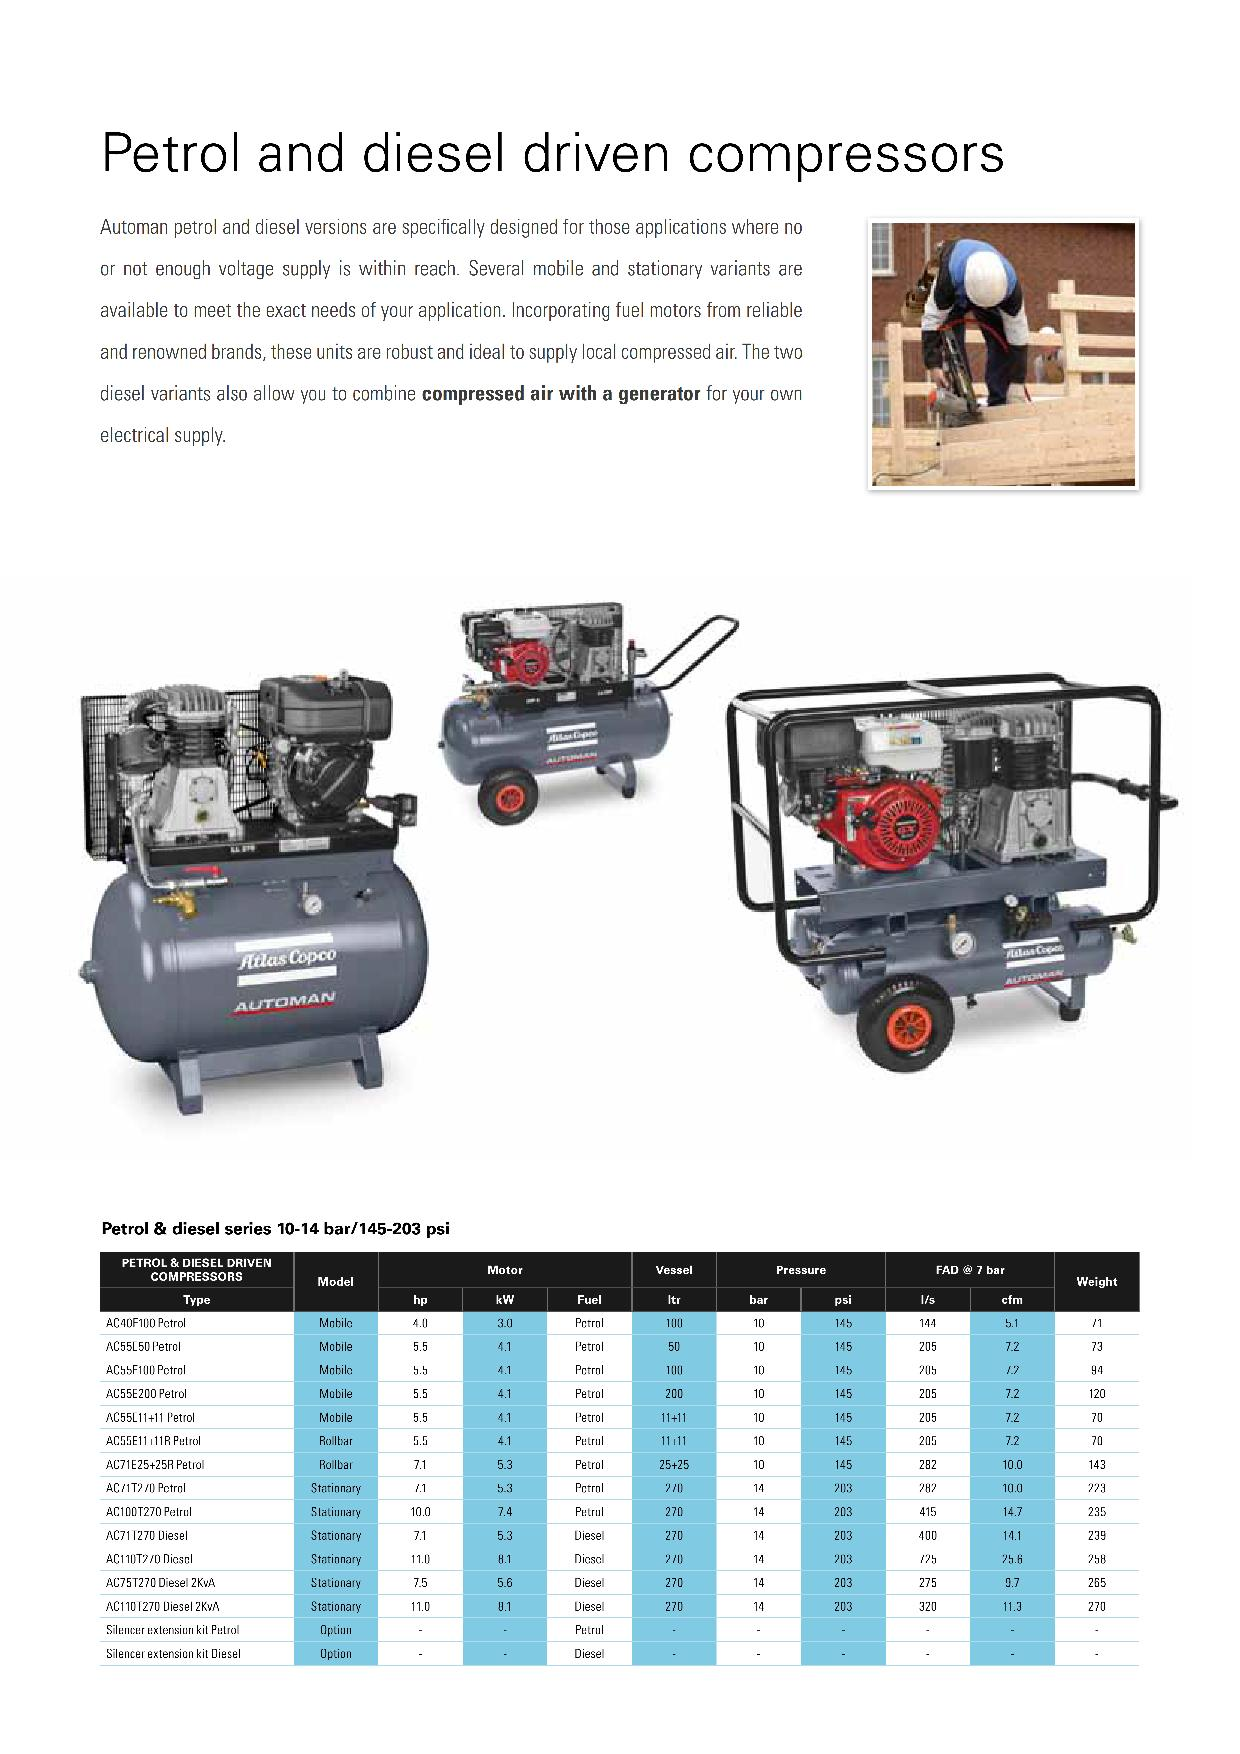 Petrol and Diesel Driven Compressors